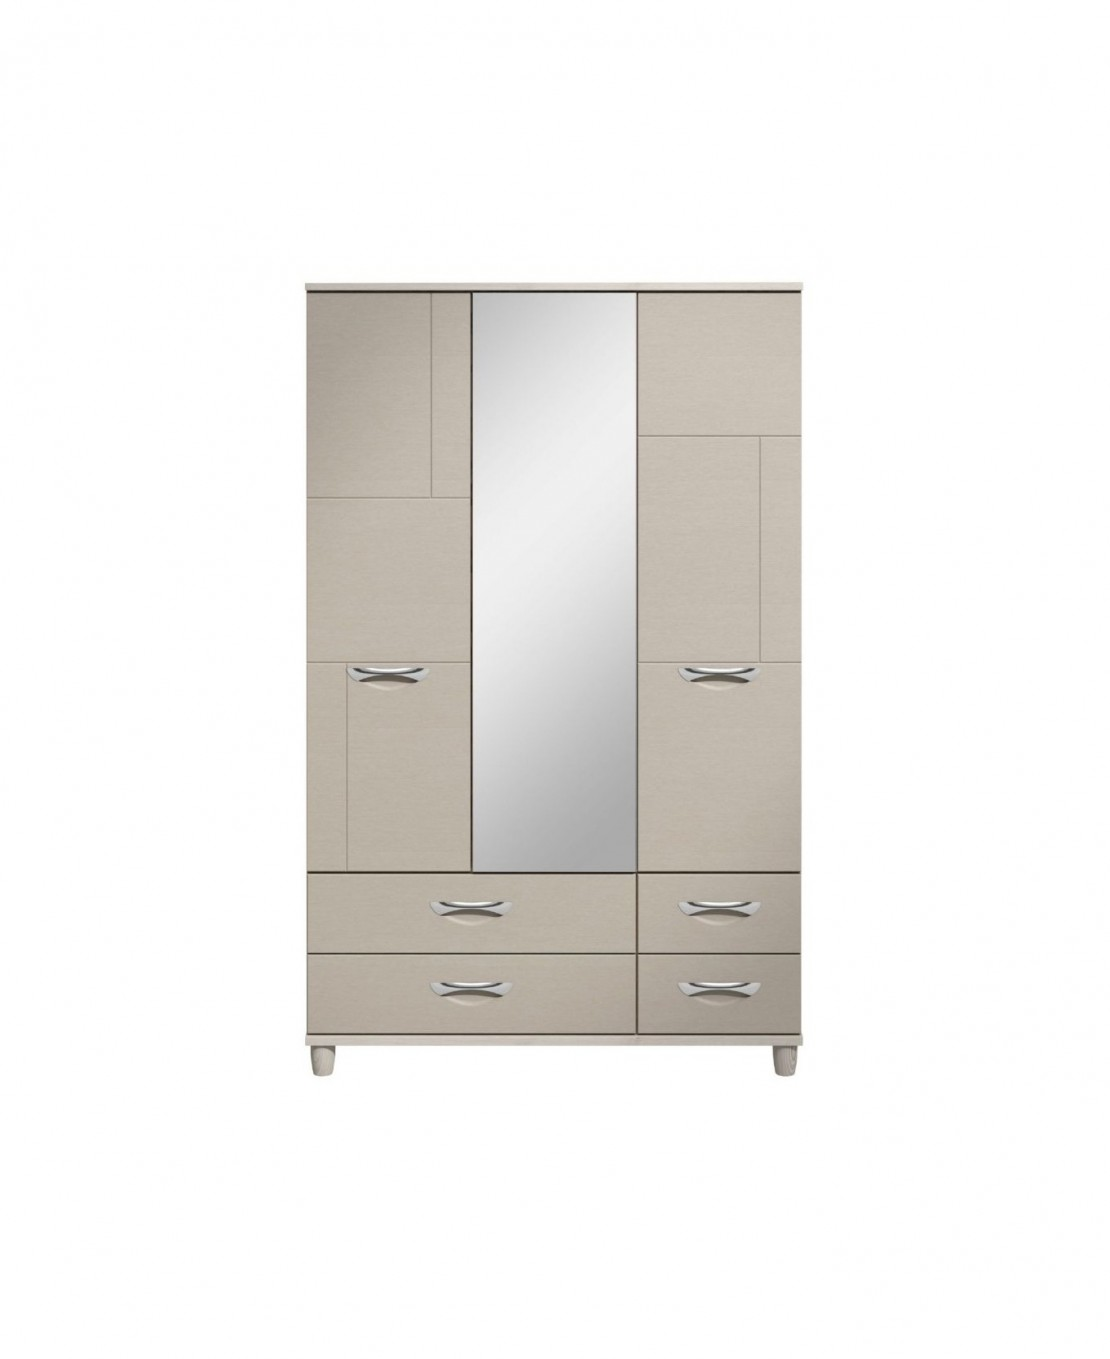 /_images/product-photos/kt-furniture-moda-cashmere-3-door-centre-mirrored-gents-robe-a.jpg